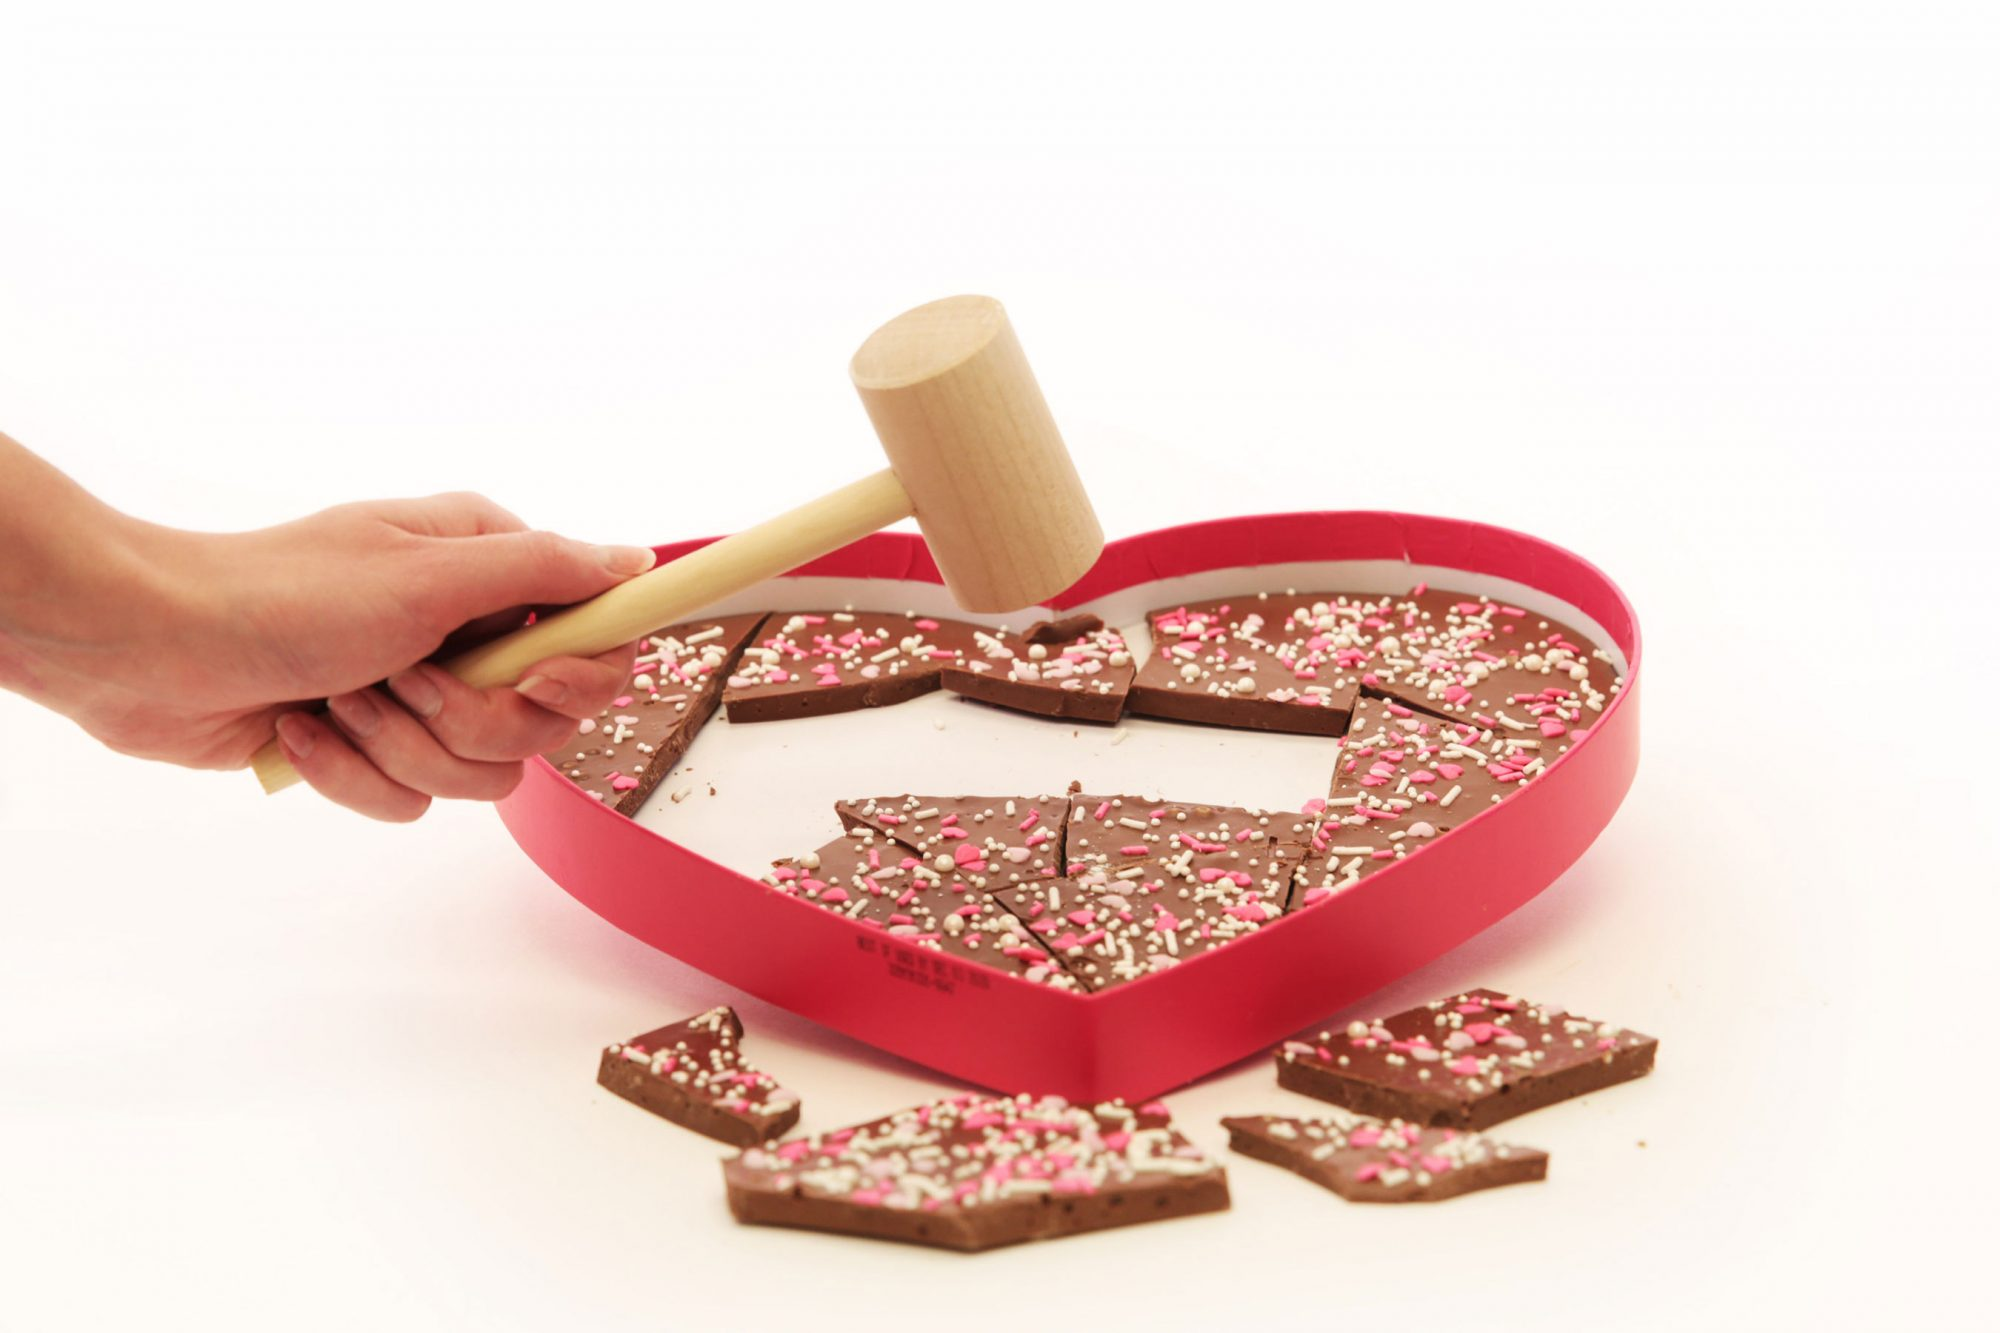 Edible Gifts for Valentine's Day